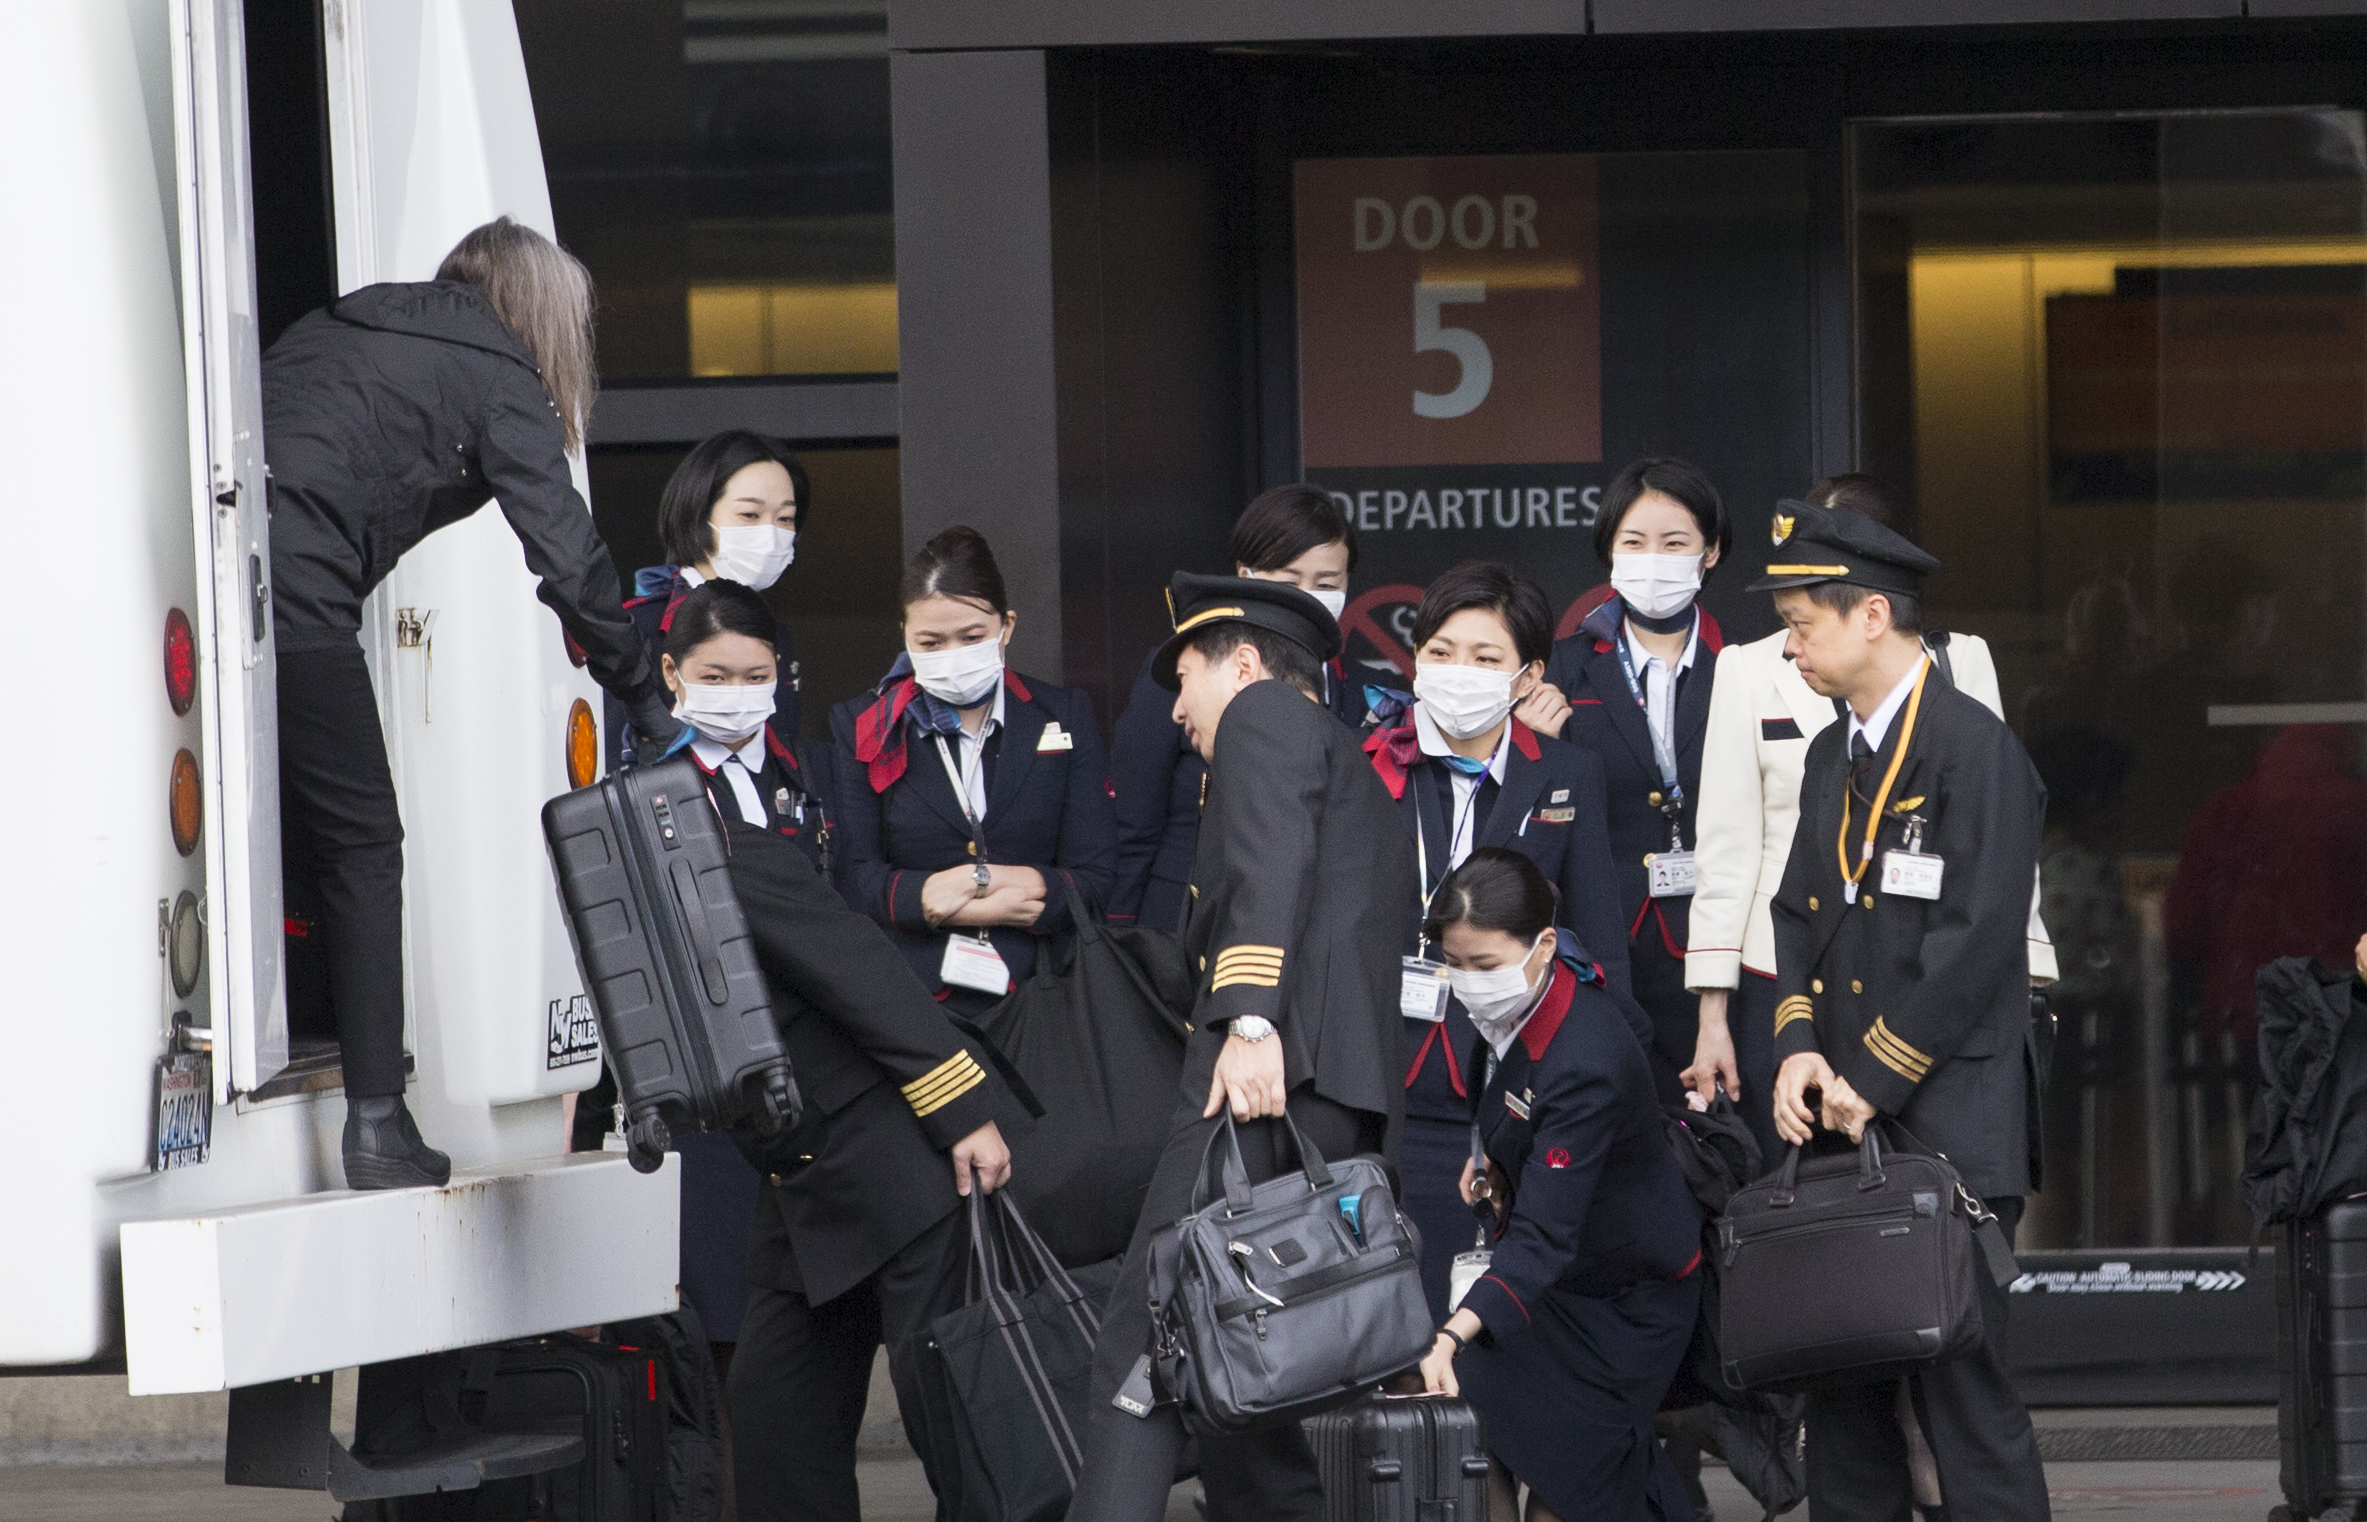 An international airlines crew arrives at the departure gate at SeattleTacoma International Airport (also known as Sea-Tac Airport) on March 8, 2020 in Seattle, Washington. (Karen Ducey/Getty Images)